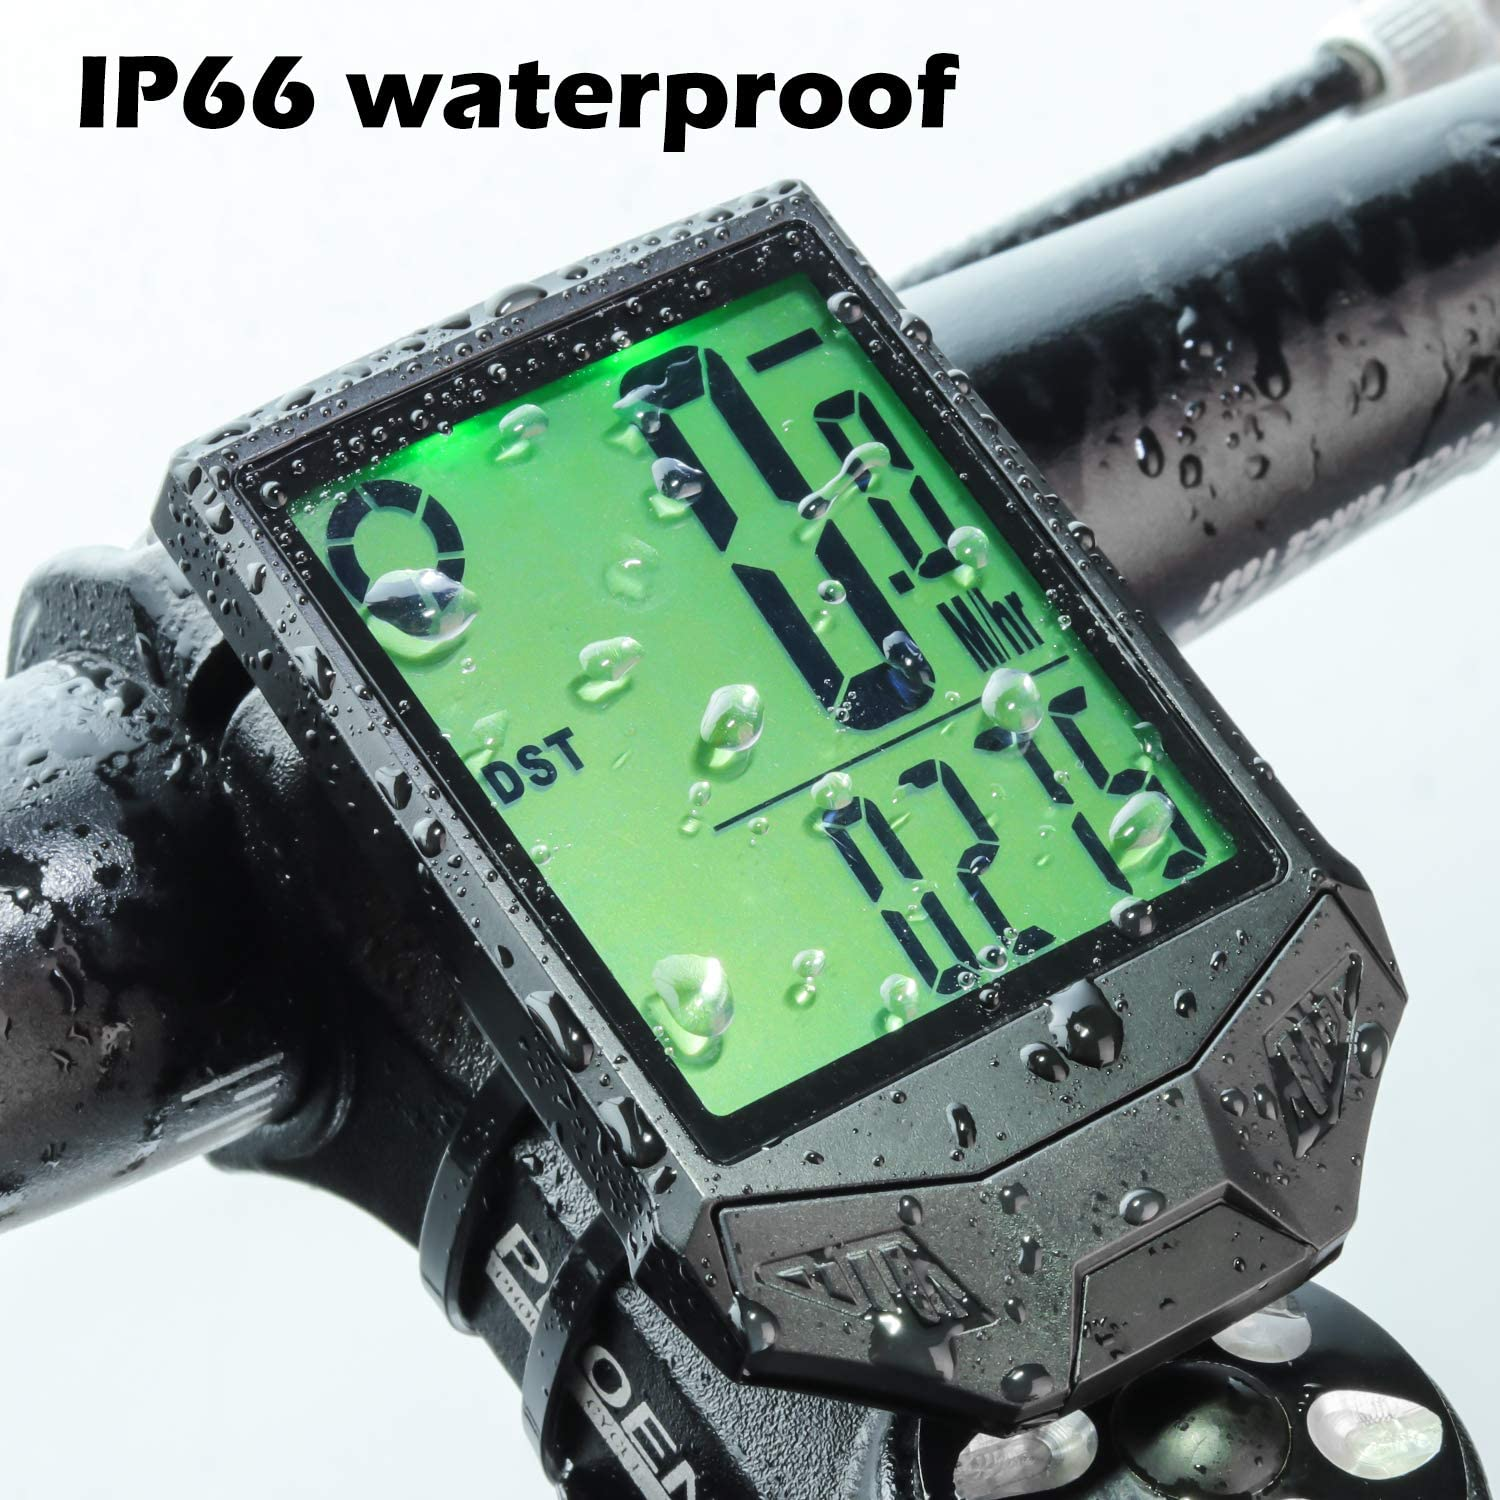 PRUNUS Bike Speedometer and Odometer Wireless Waterproof Bicycle Computer with Digital LCD Display